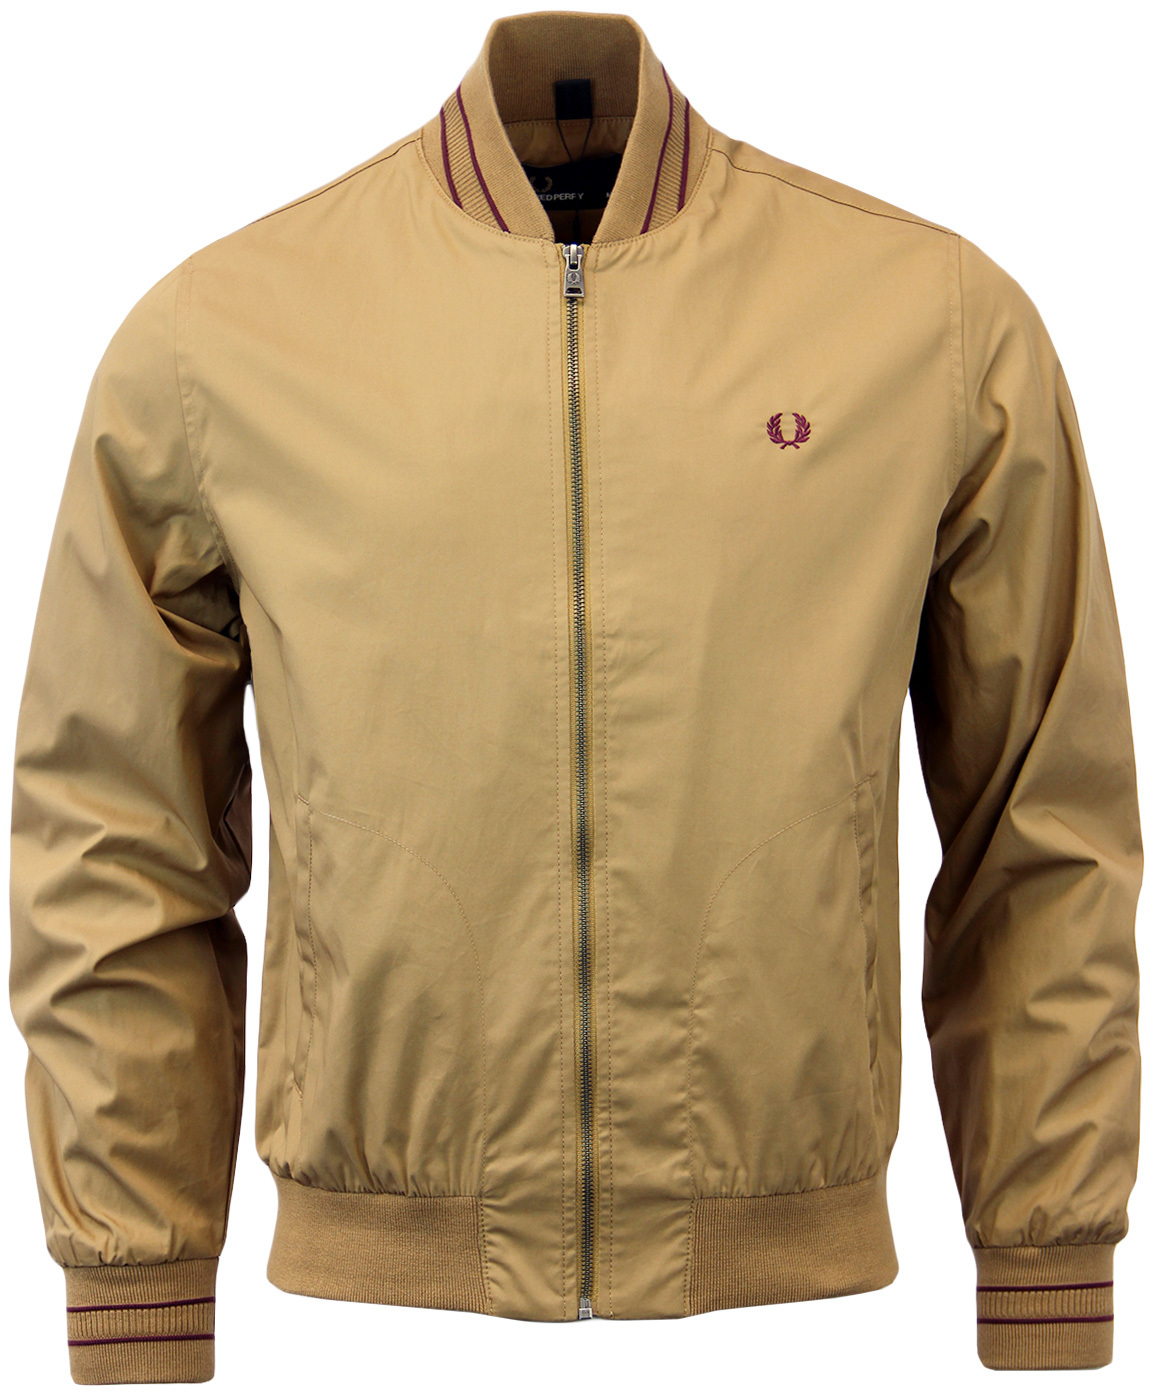 FRED PERRY TRAMLINE BOMBER JACKET J8223 RUBBER